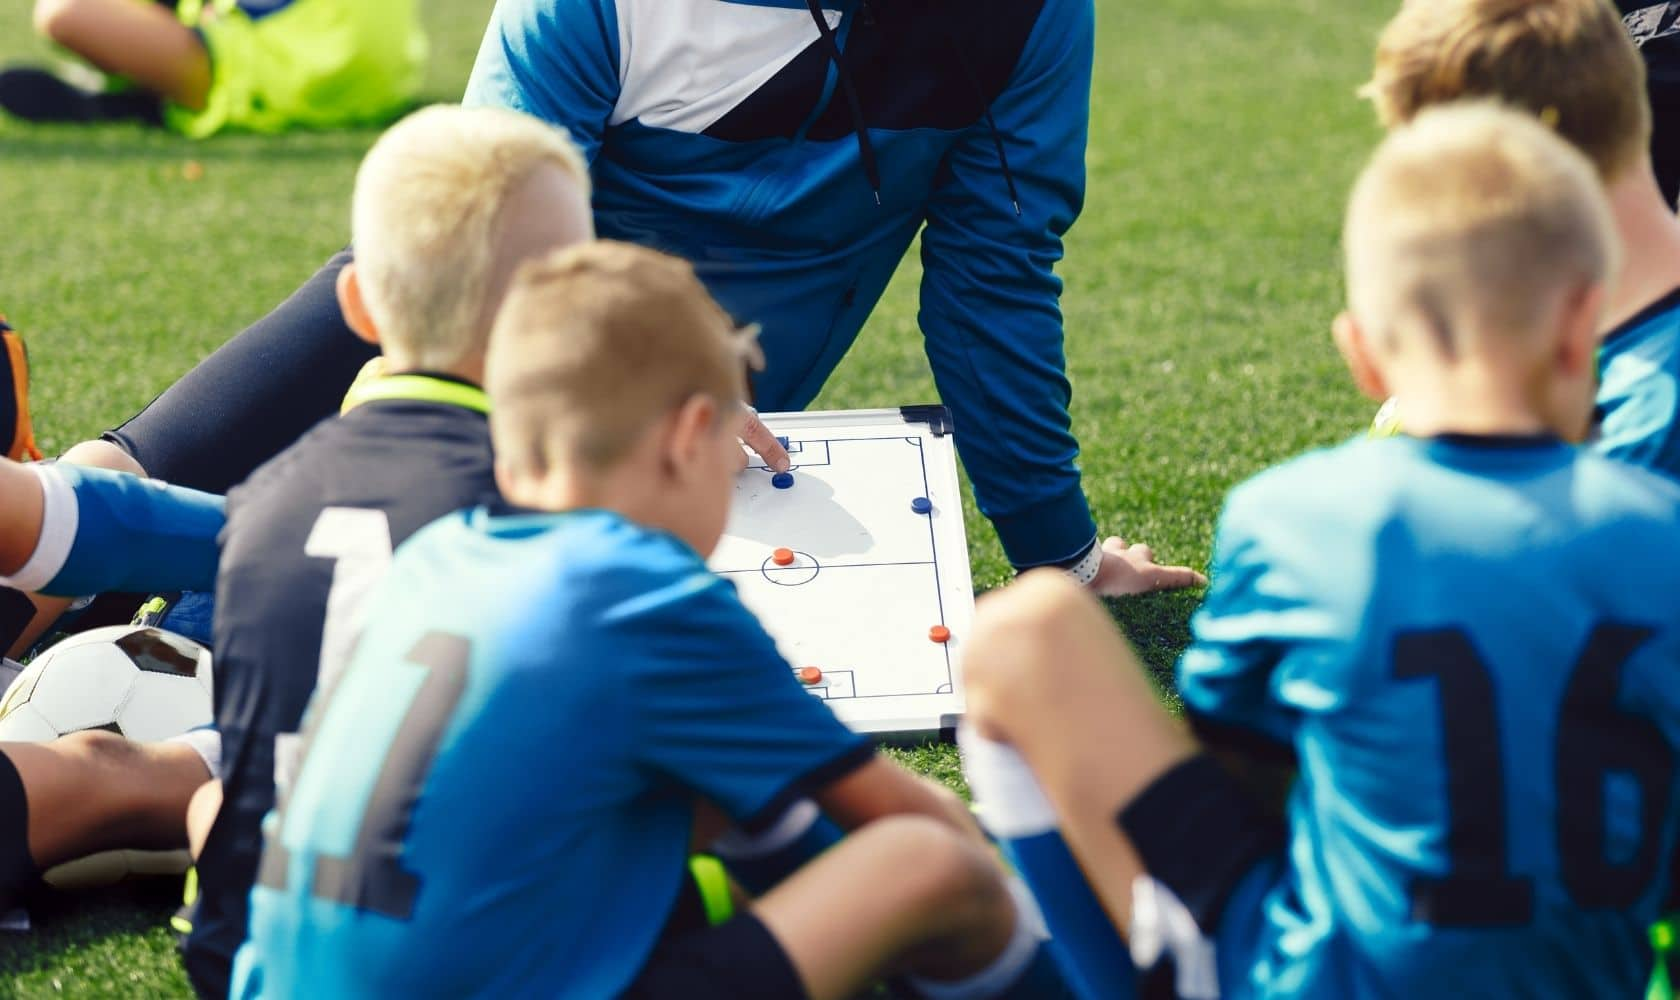 An extensive course on session design and delivery. Coaches and industry experts explain techniques from professional soccer academies.